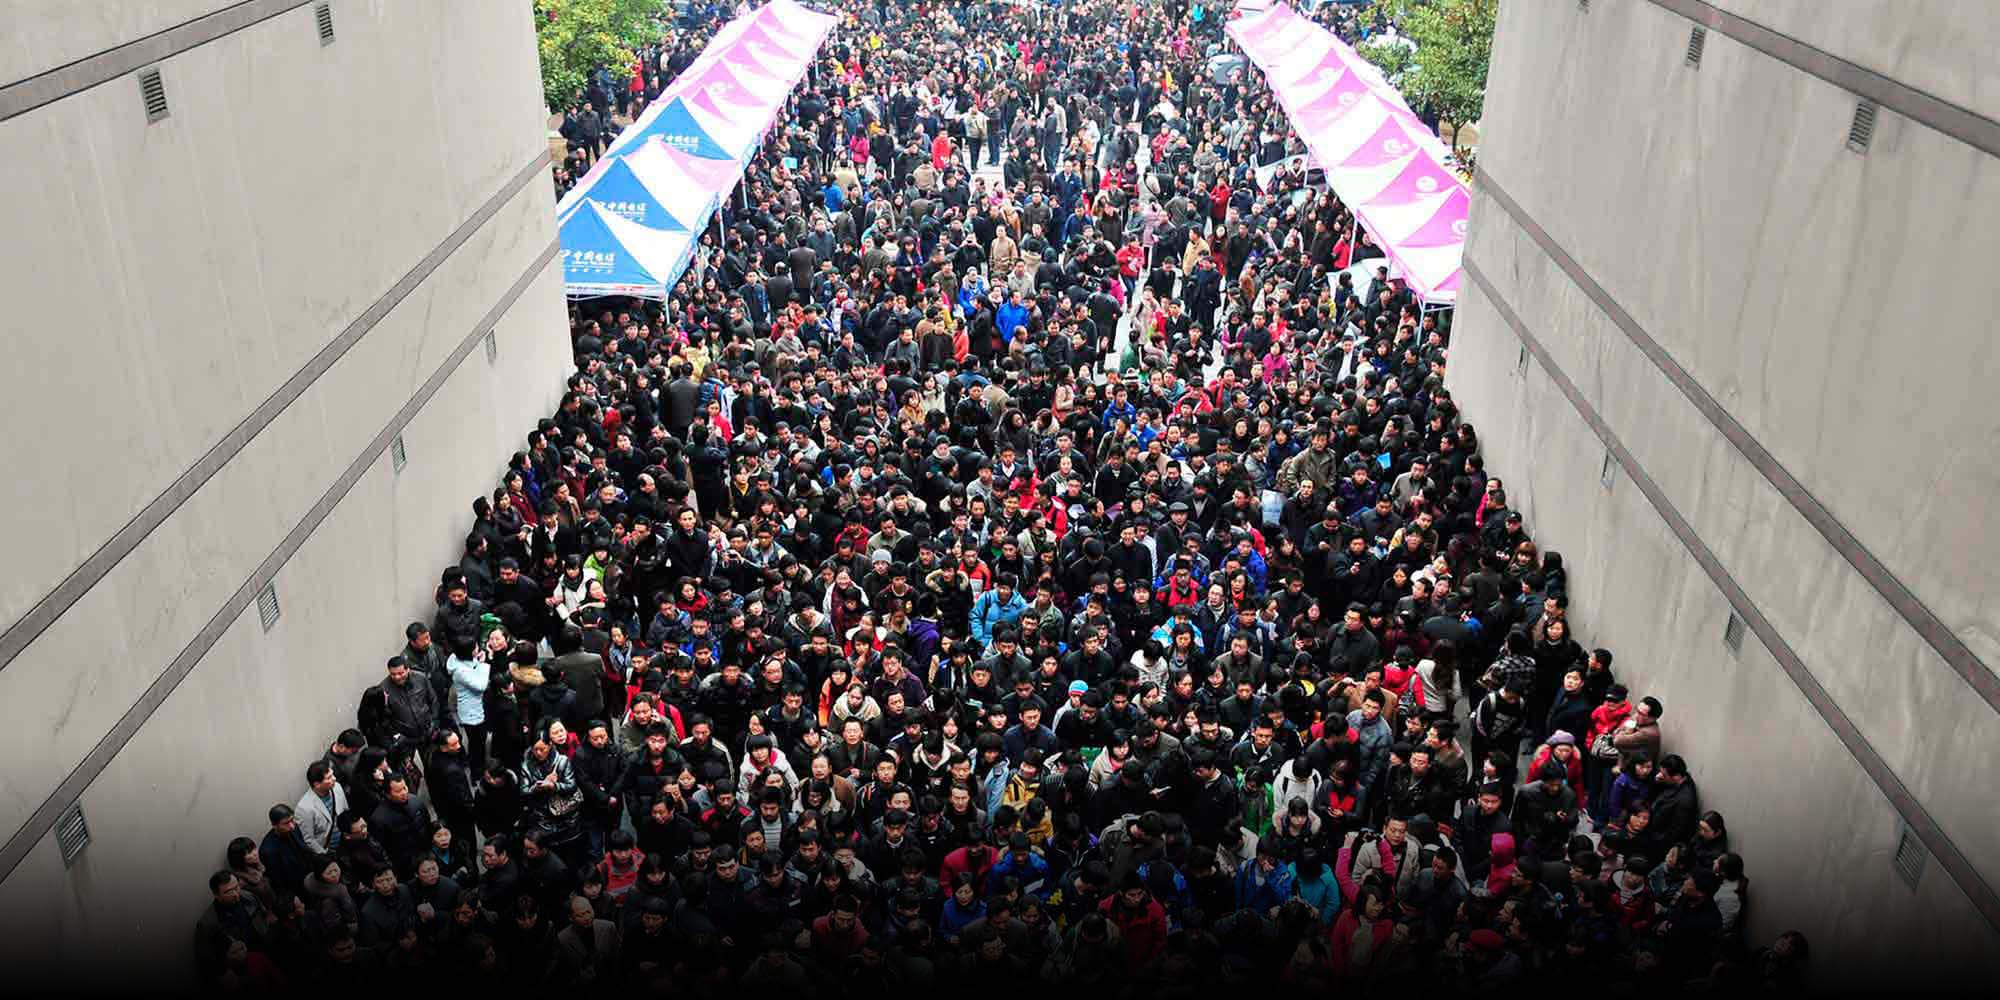 college entrance exam in china The chinese college entrance exam begins this week, bringing a mix of stress and enthusiasm — but mostly stress — for the 9-million-plus students who sit for the test.